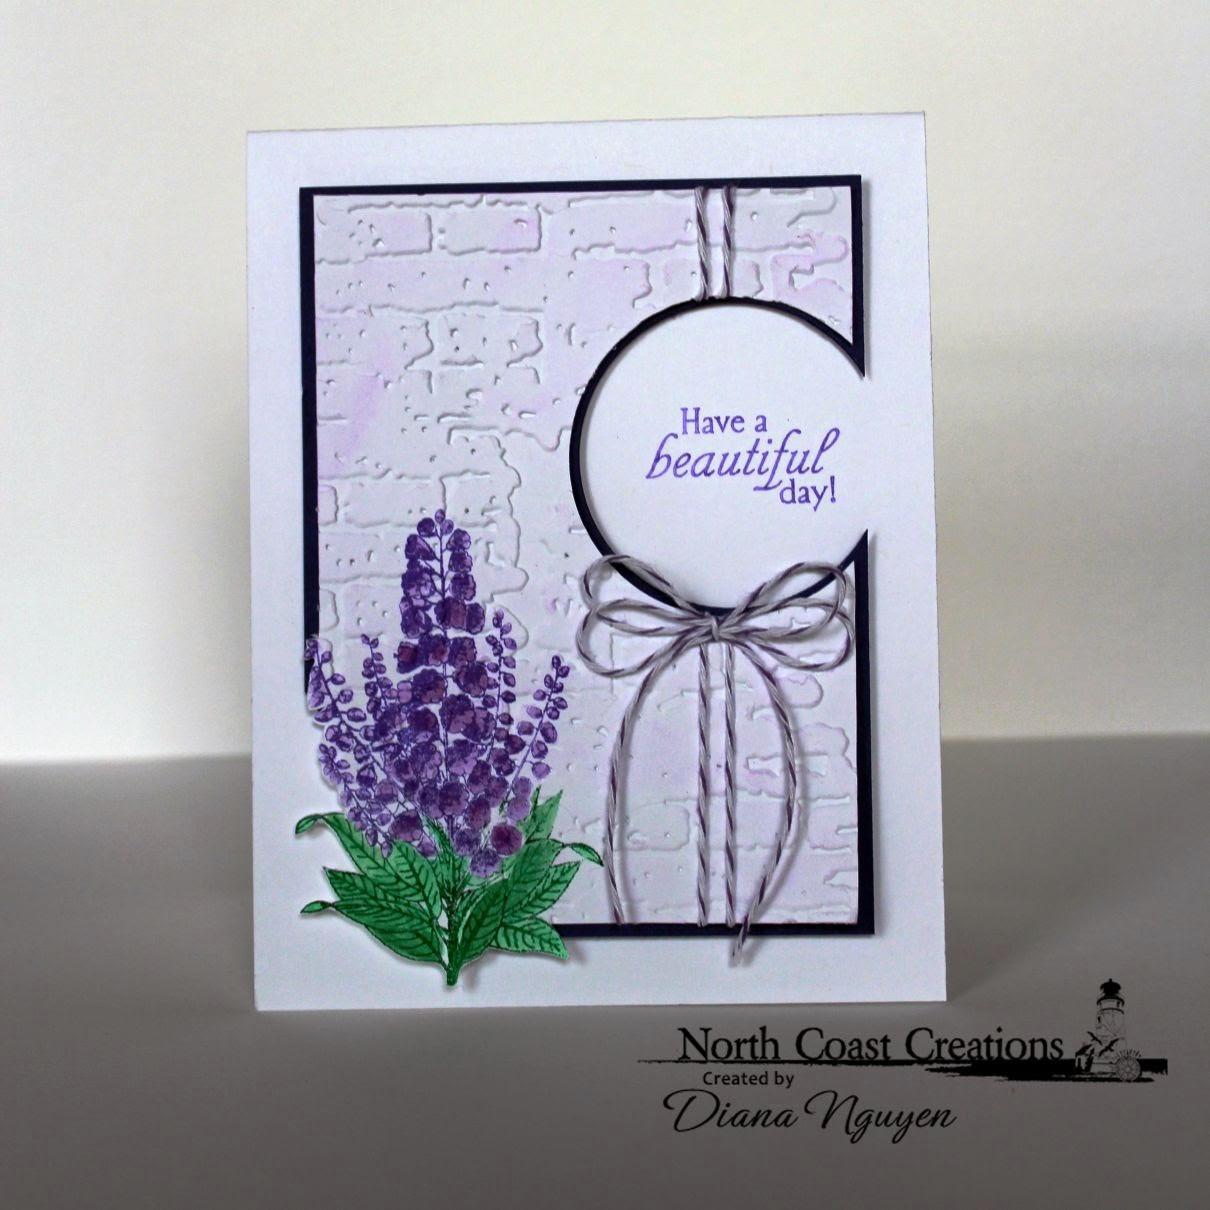 Diana Nguyen, North Coast Creations, Floral Sentiments